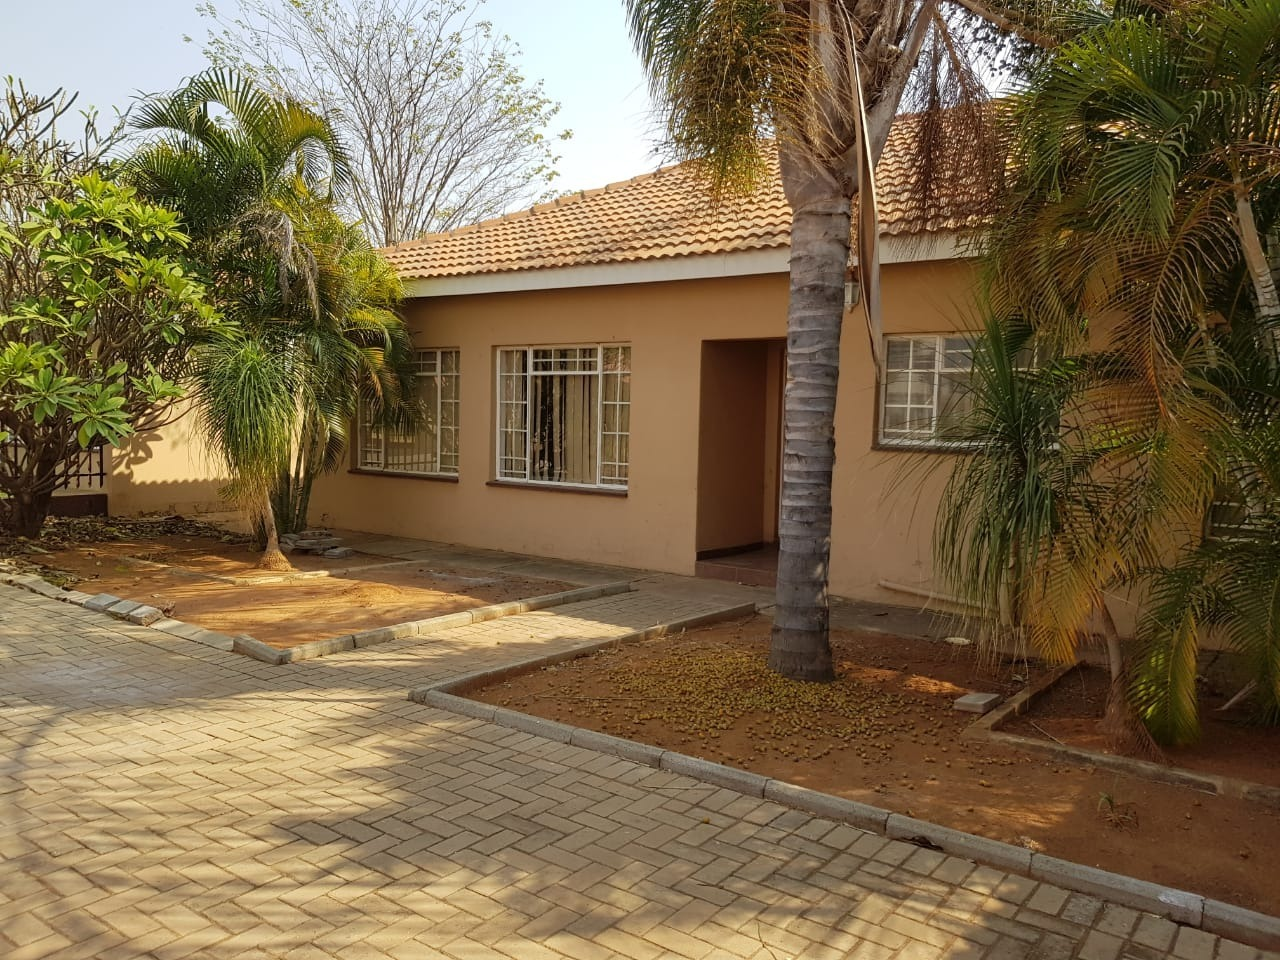 5 Bedroom House For Sale In Lephalale Re Max Of Southern Africa